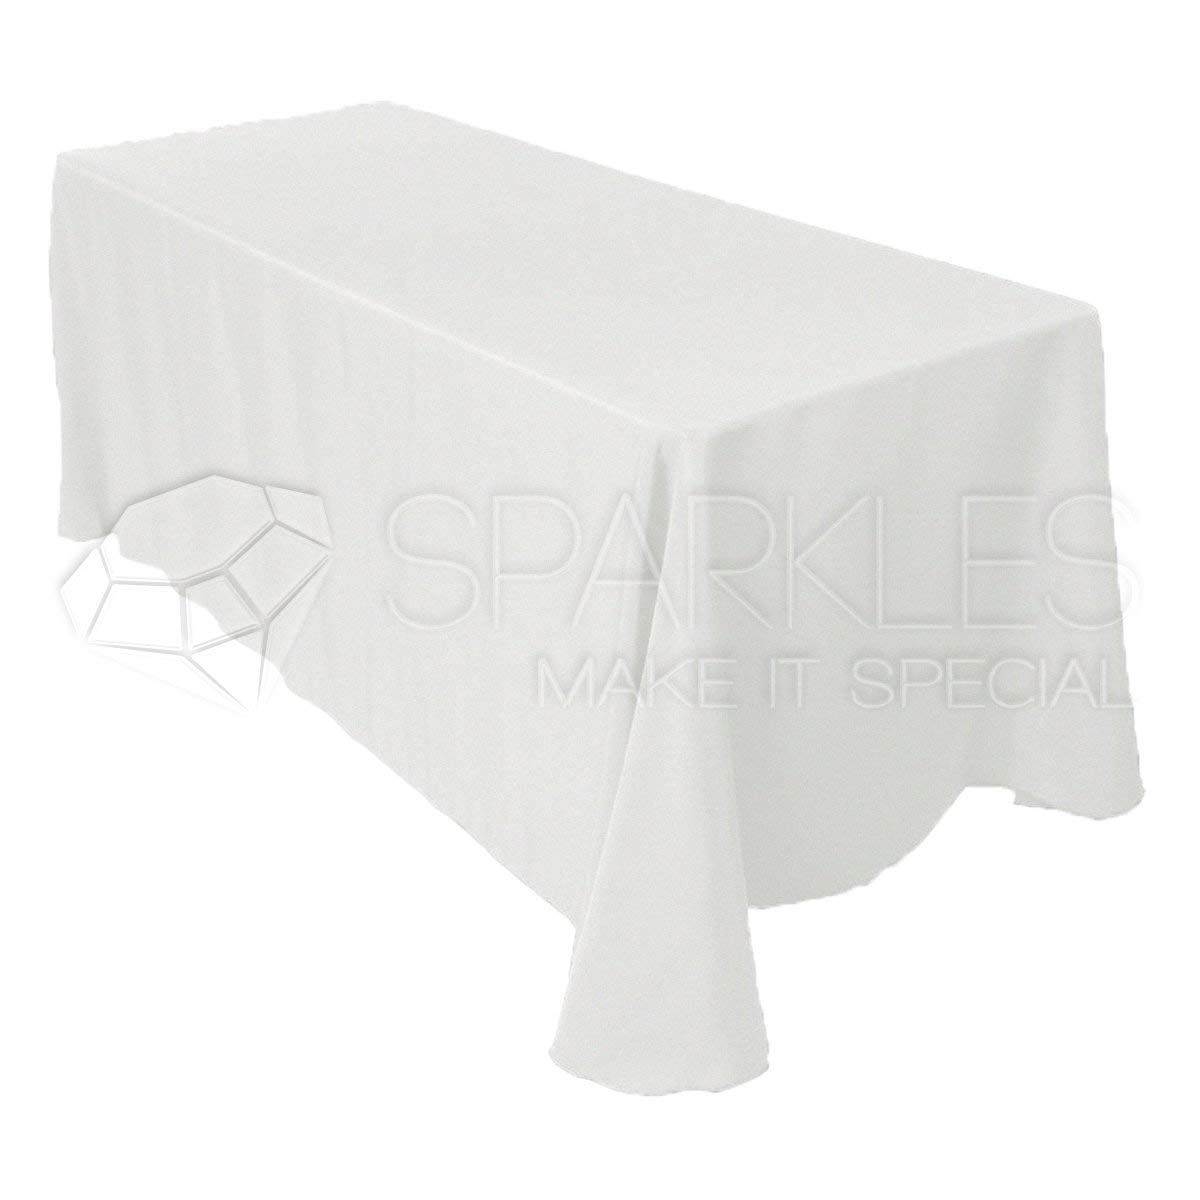 "Sparkles Make It Special 5-pcs 90"" x 156"" inch Rectangular Polyester Cloth Fabric Linen Tablecloth - Wedding Reception Restaurant Banquet Party - Machine Washable - White"